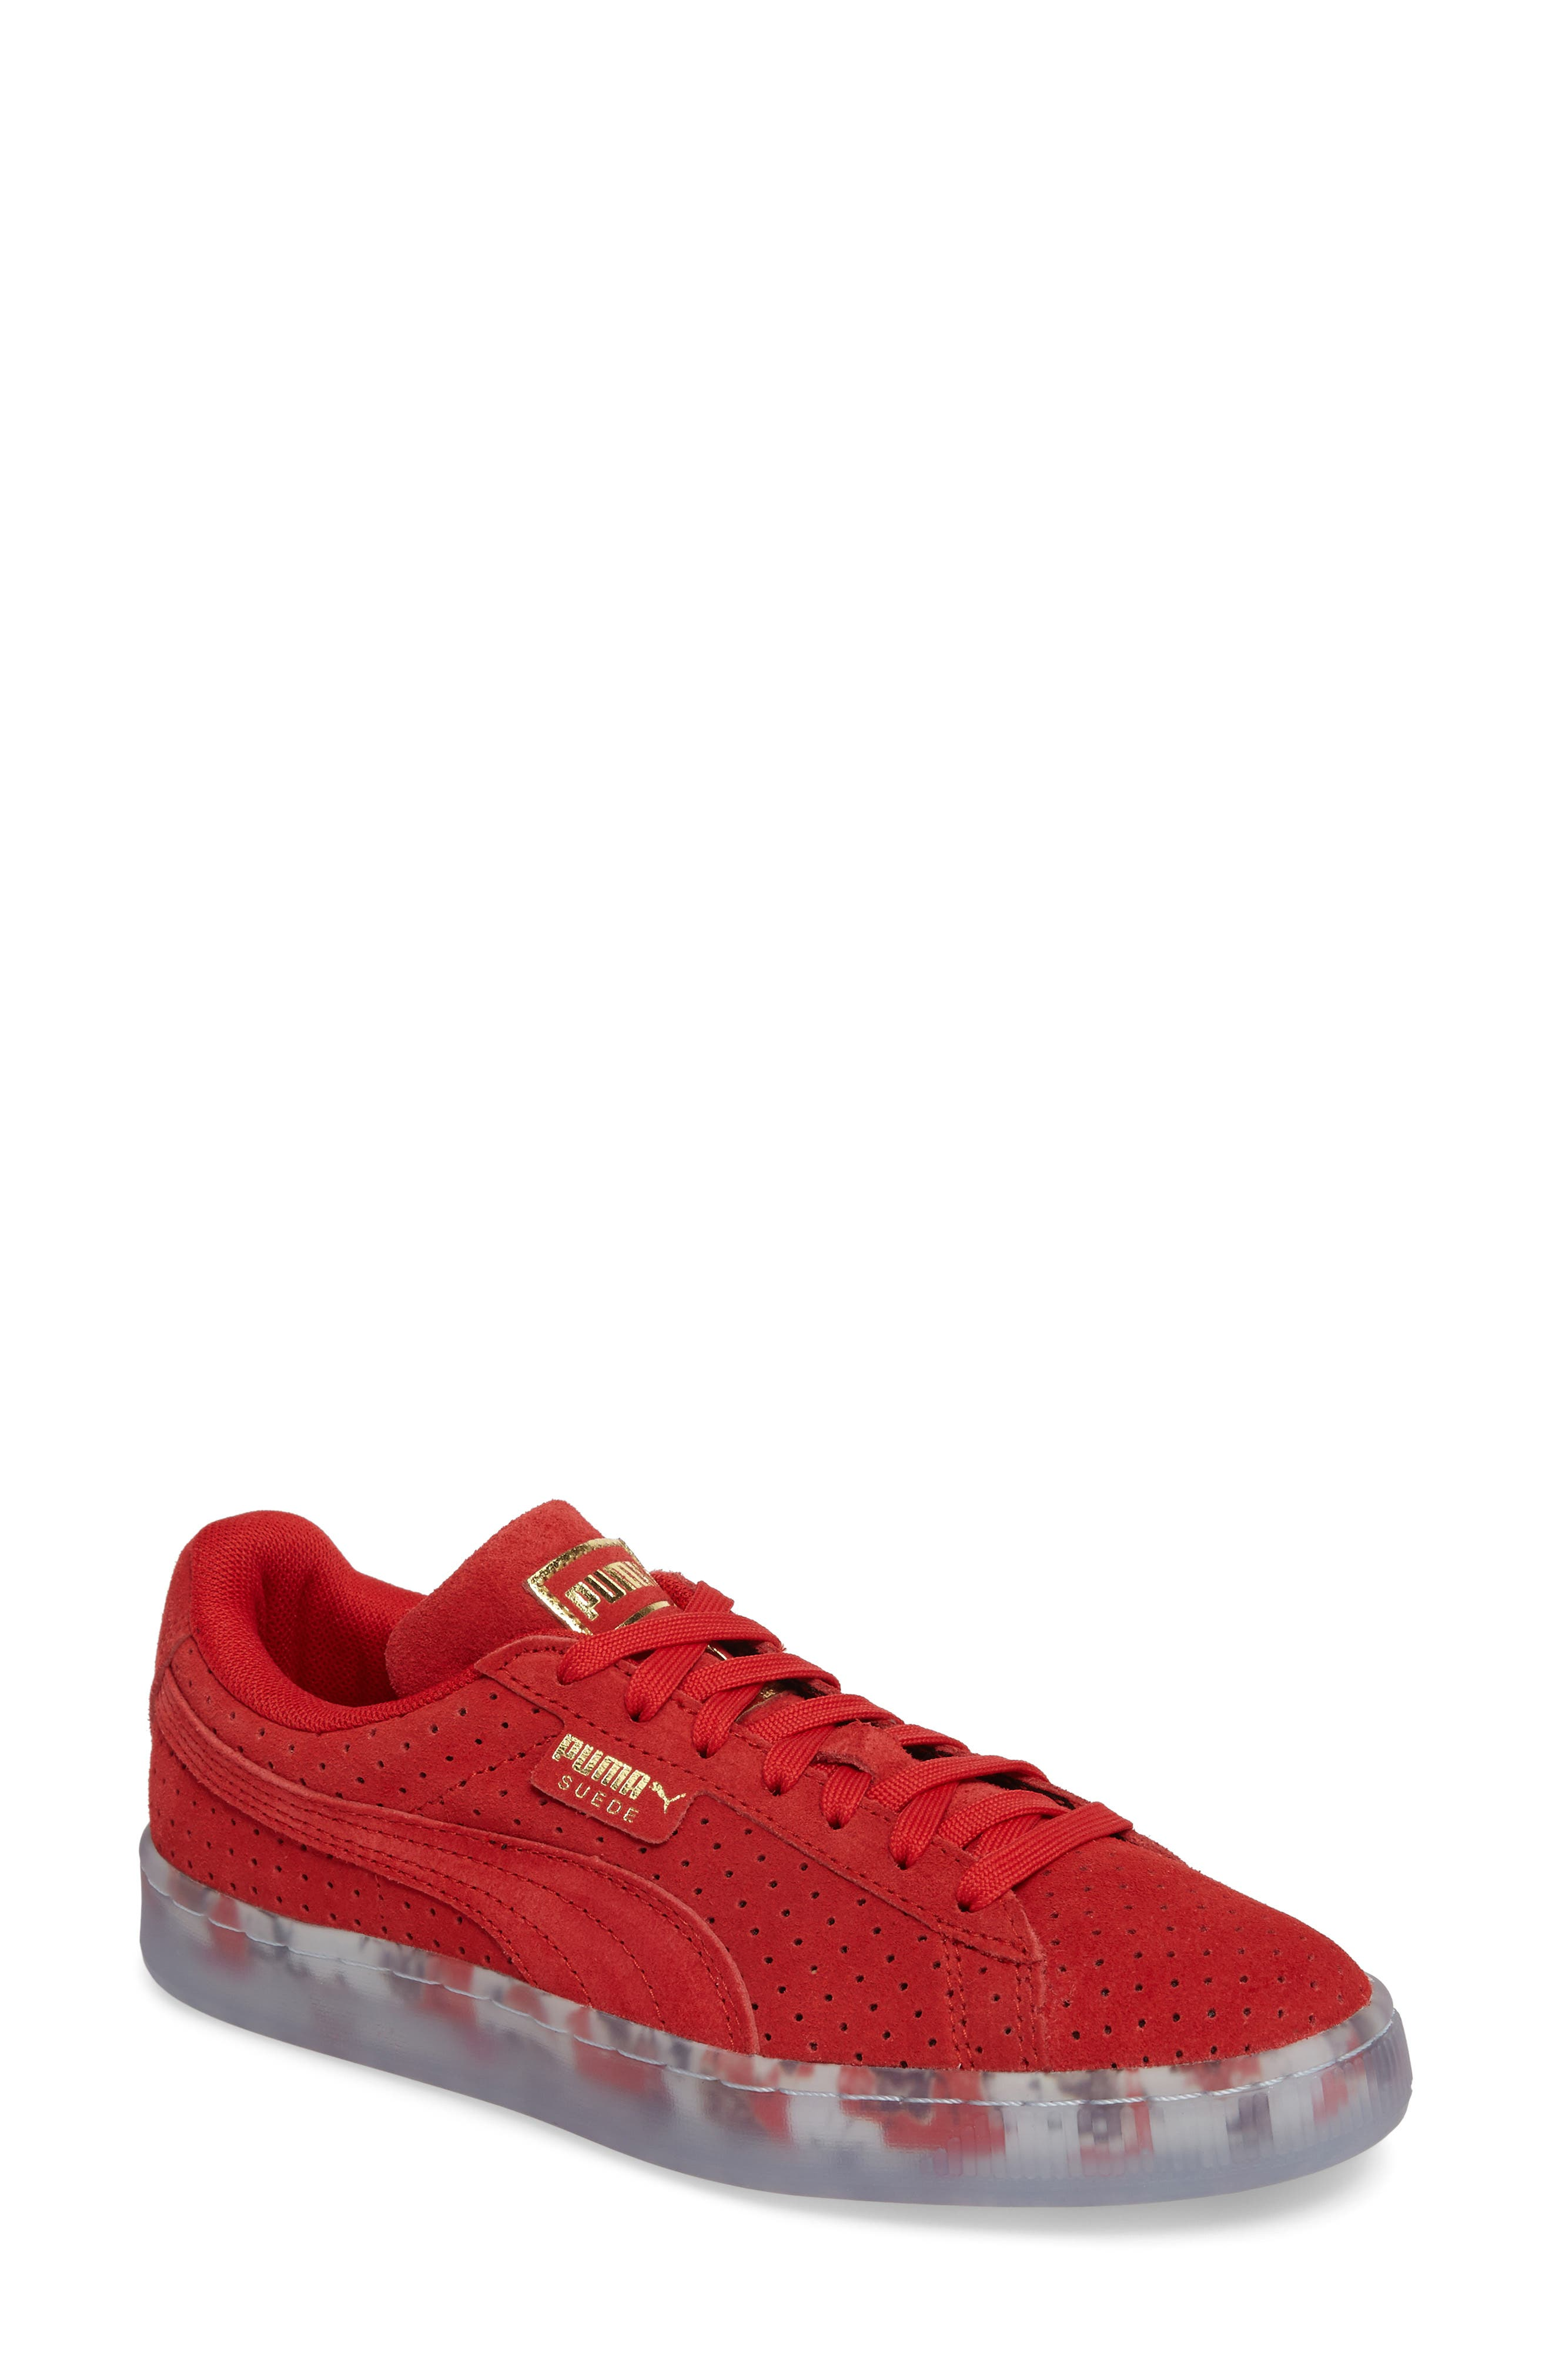 Suede Classic Perforated Sneaker,                             Main thumbnail 1, color,                             High Risk Red/ Puma White